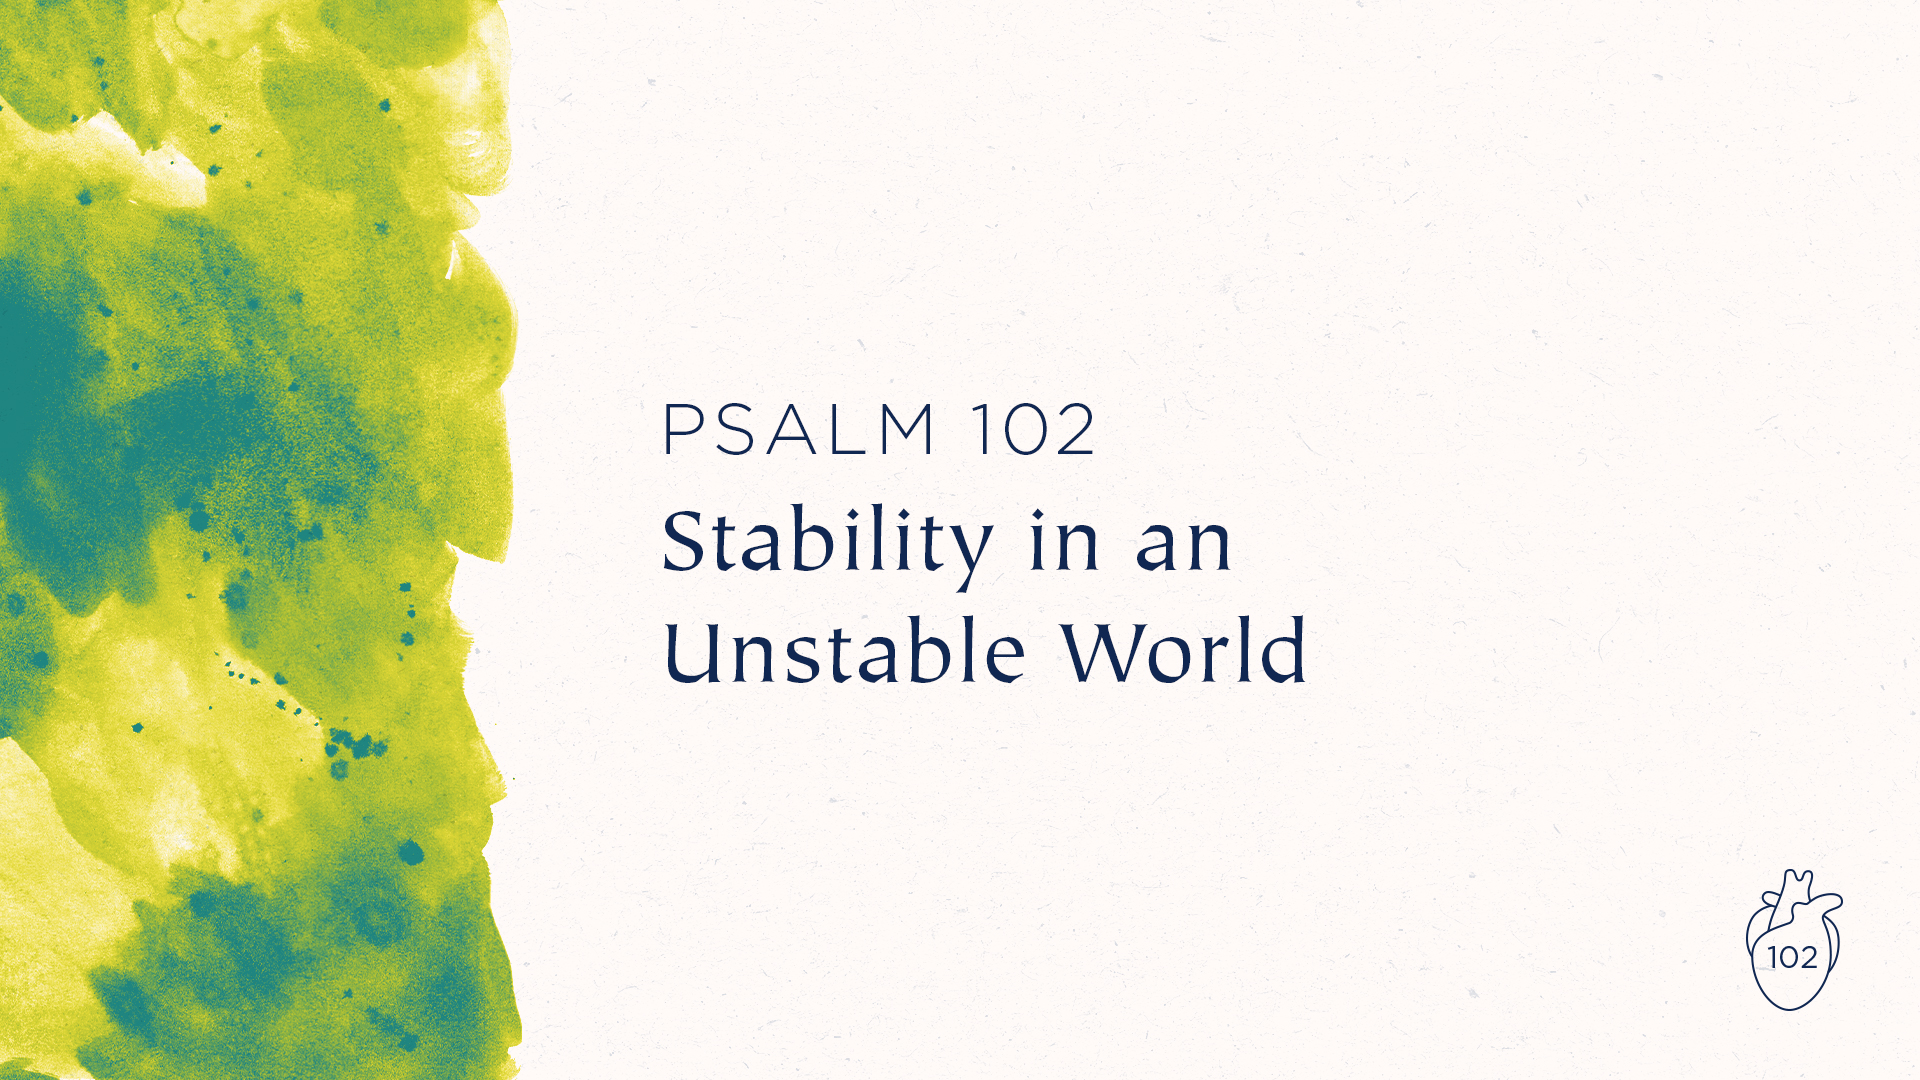 Stability in an Unstable World